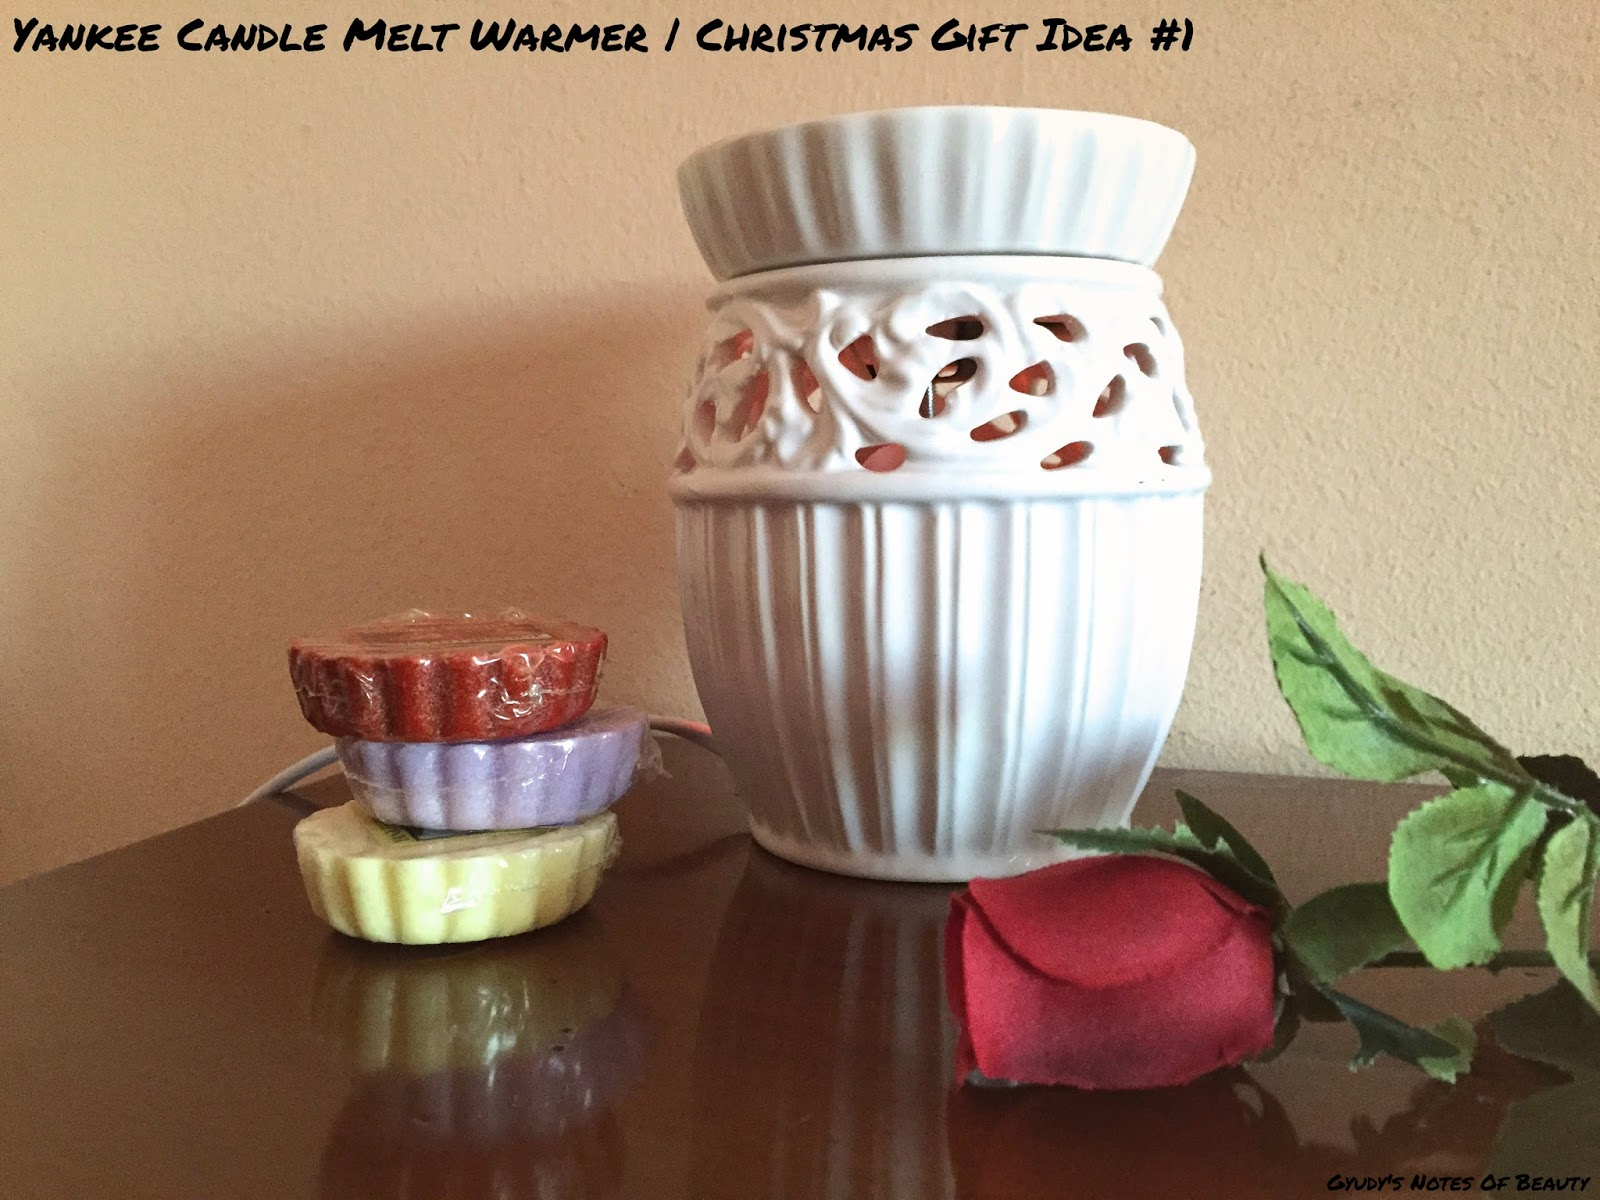 Yankee Candle Astbury Melt warmer